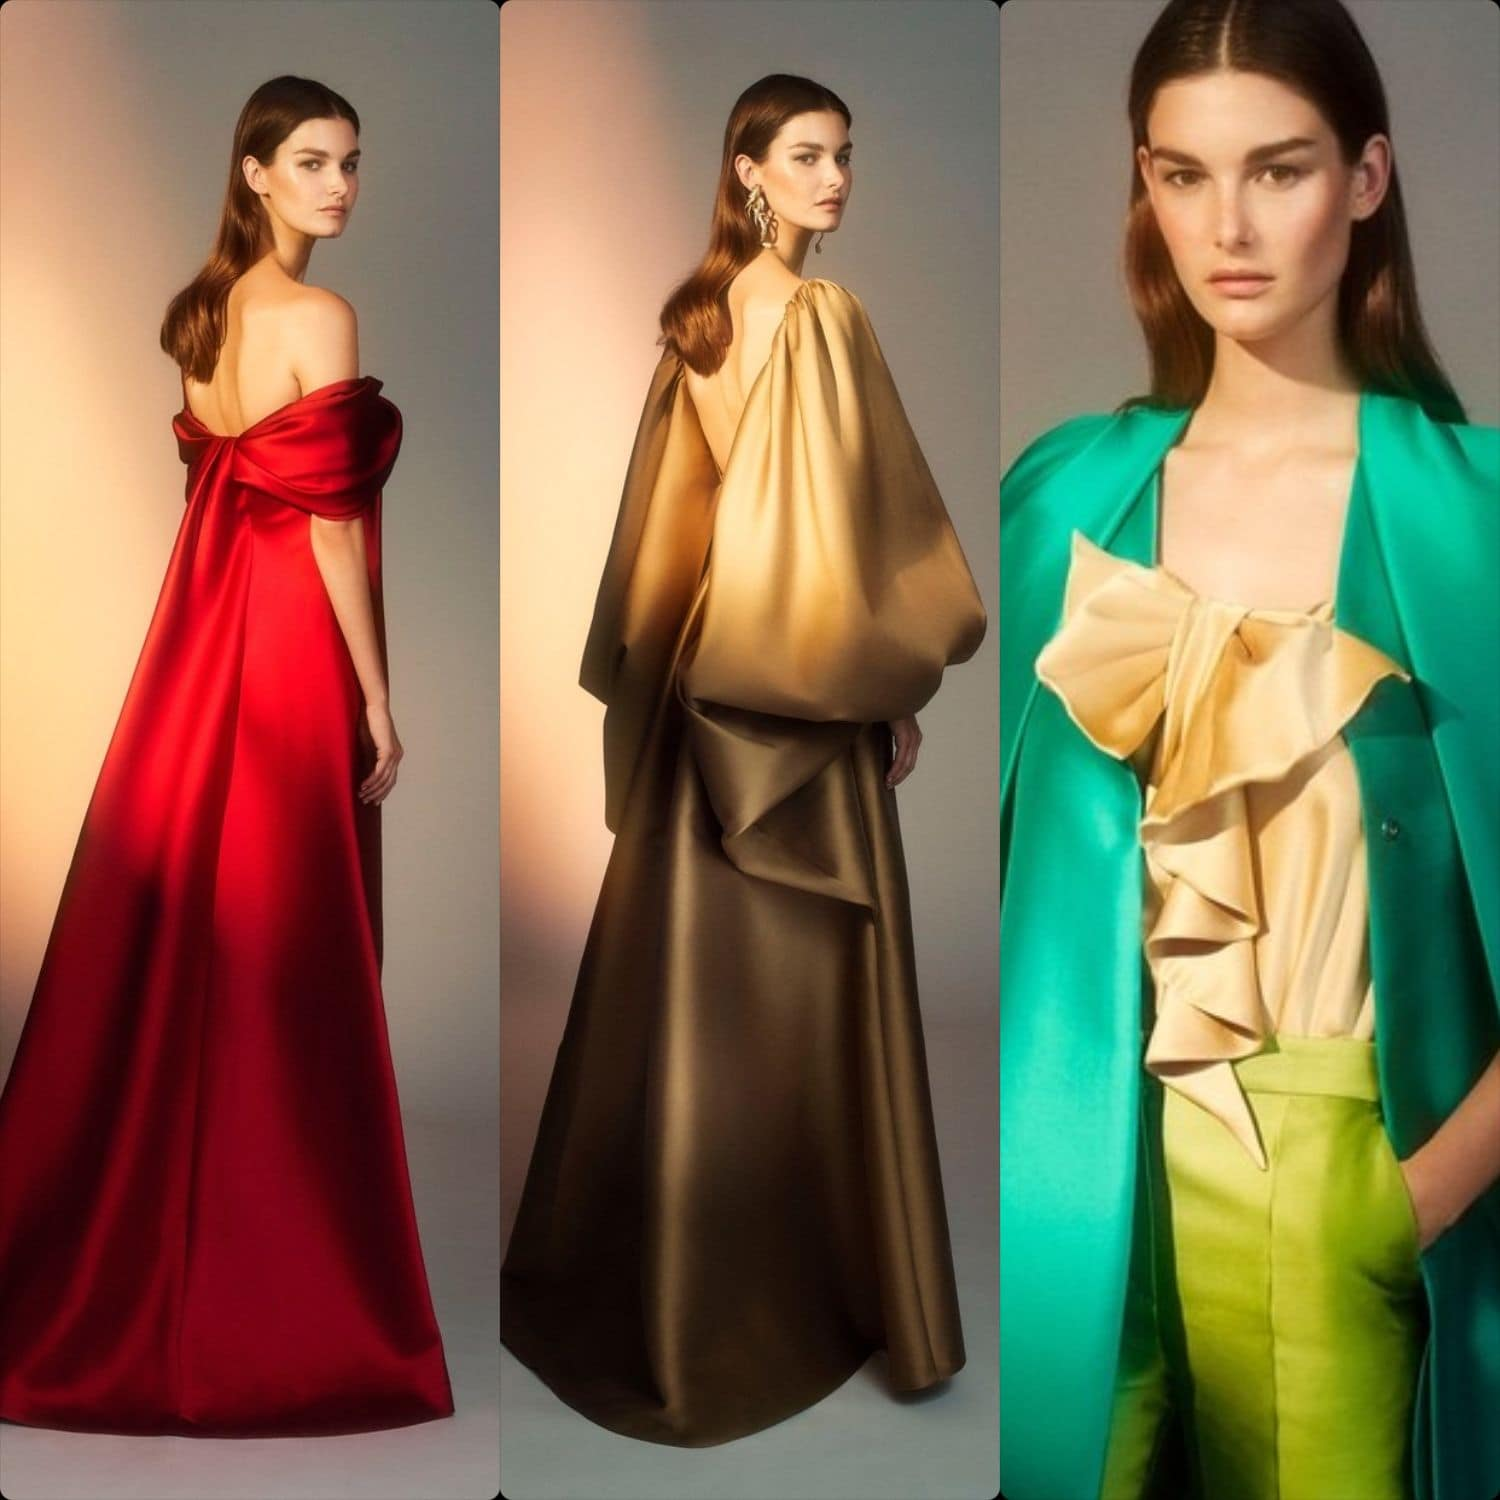 Alberta Ferretti Limited Edition Haute Couture Fall-Winter 2019-2020. RUNWAY MAGAZINE ® Collections. RUNWAY NOW / RUNWAY NEW